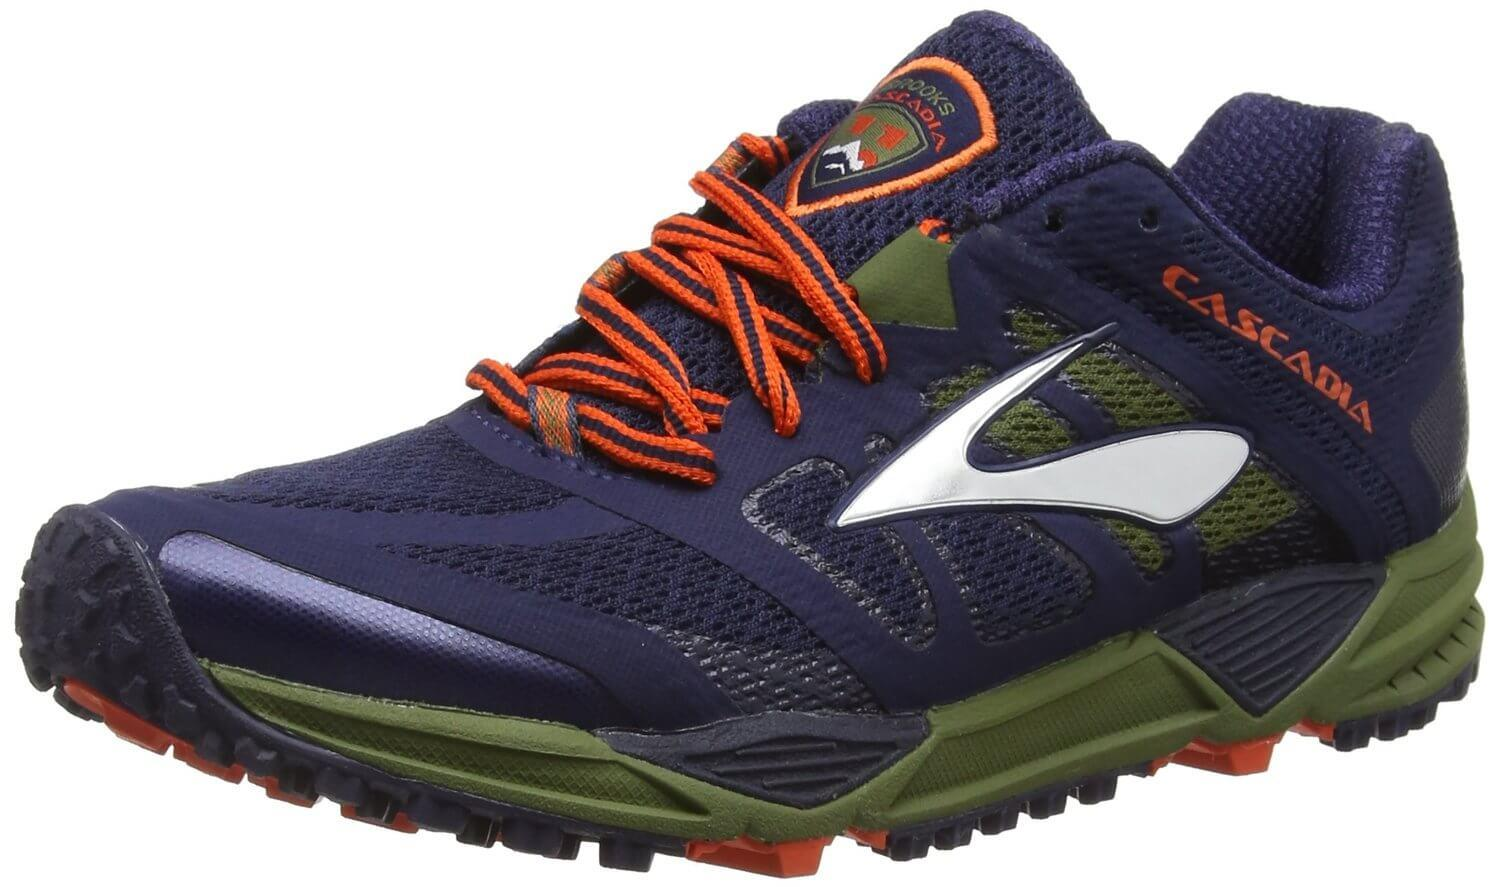 the Brooks Cascadia 11 provides balance and protection during a run